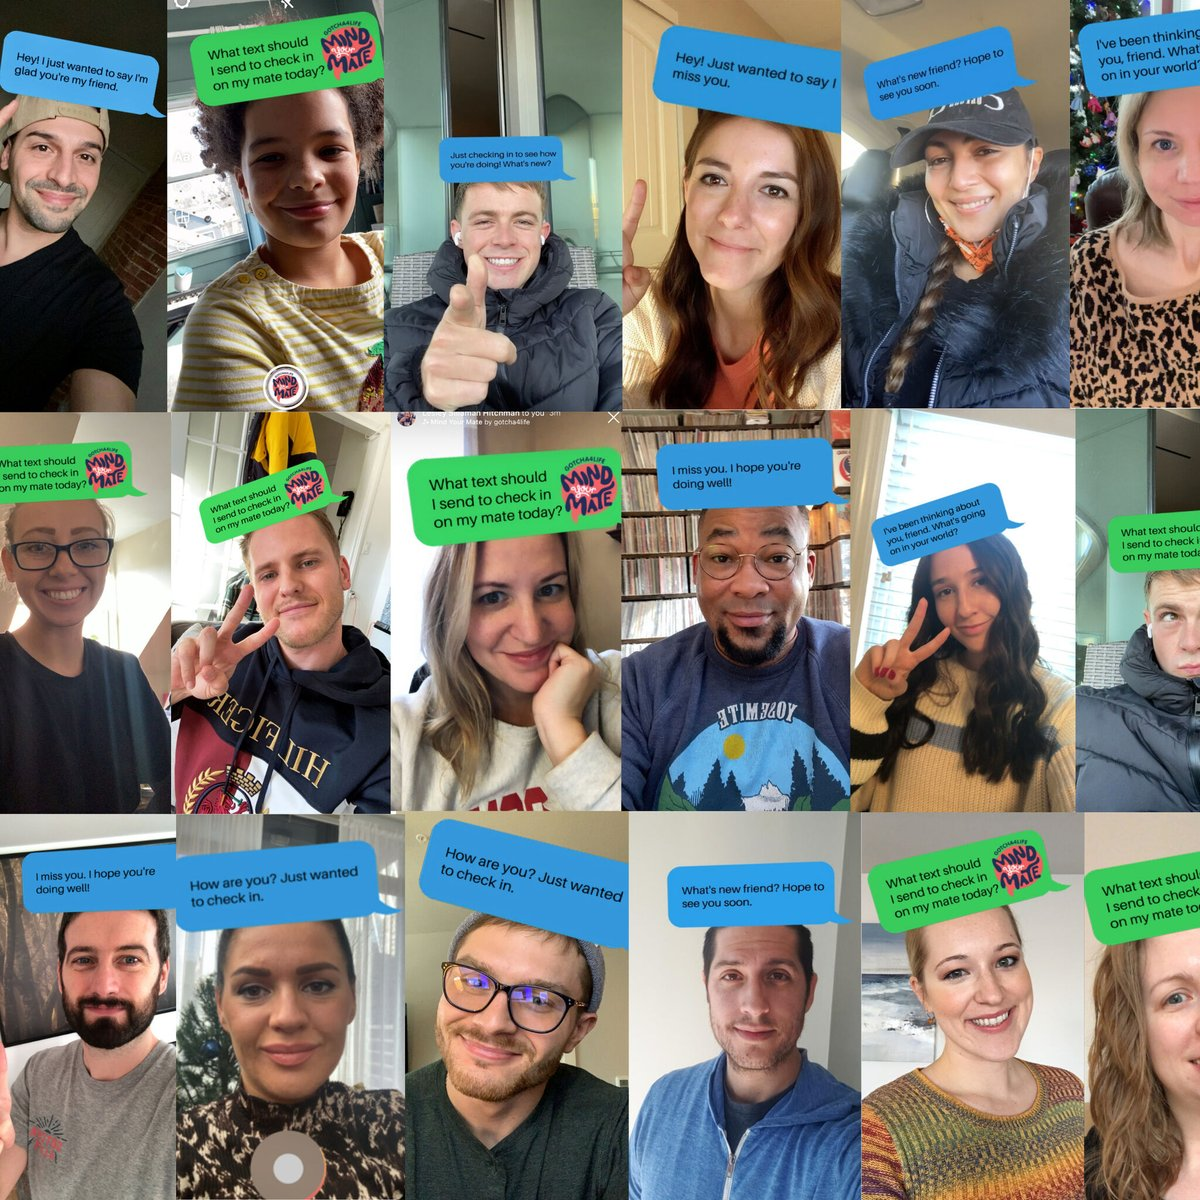 Have you taken the #MindYourMate challenge yet? We encourage you to:   🤳 Head over to our IG filter (@gotcha4life) 💌 Use it to find out what message you should send 👋 Send it to a mate you haven't checked in on in a while ☺️ Share a selfie of you using the filter with us on IG